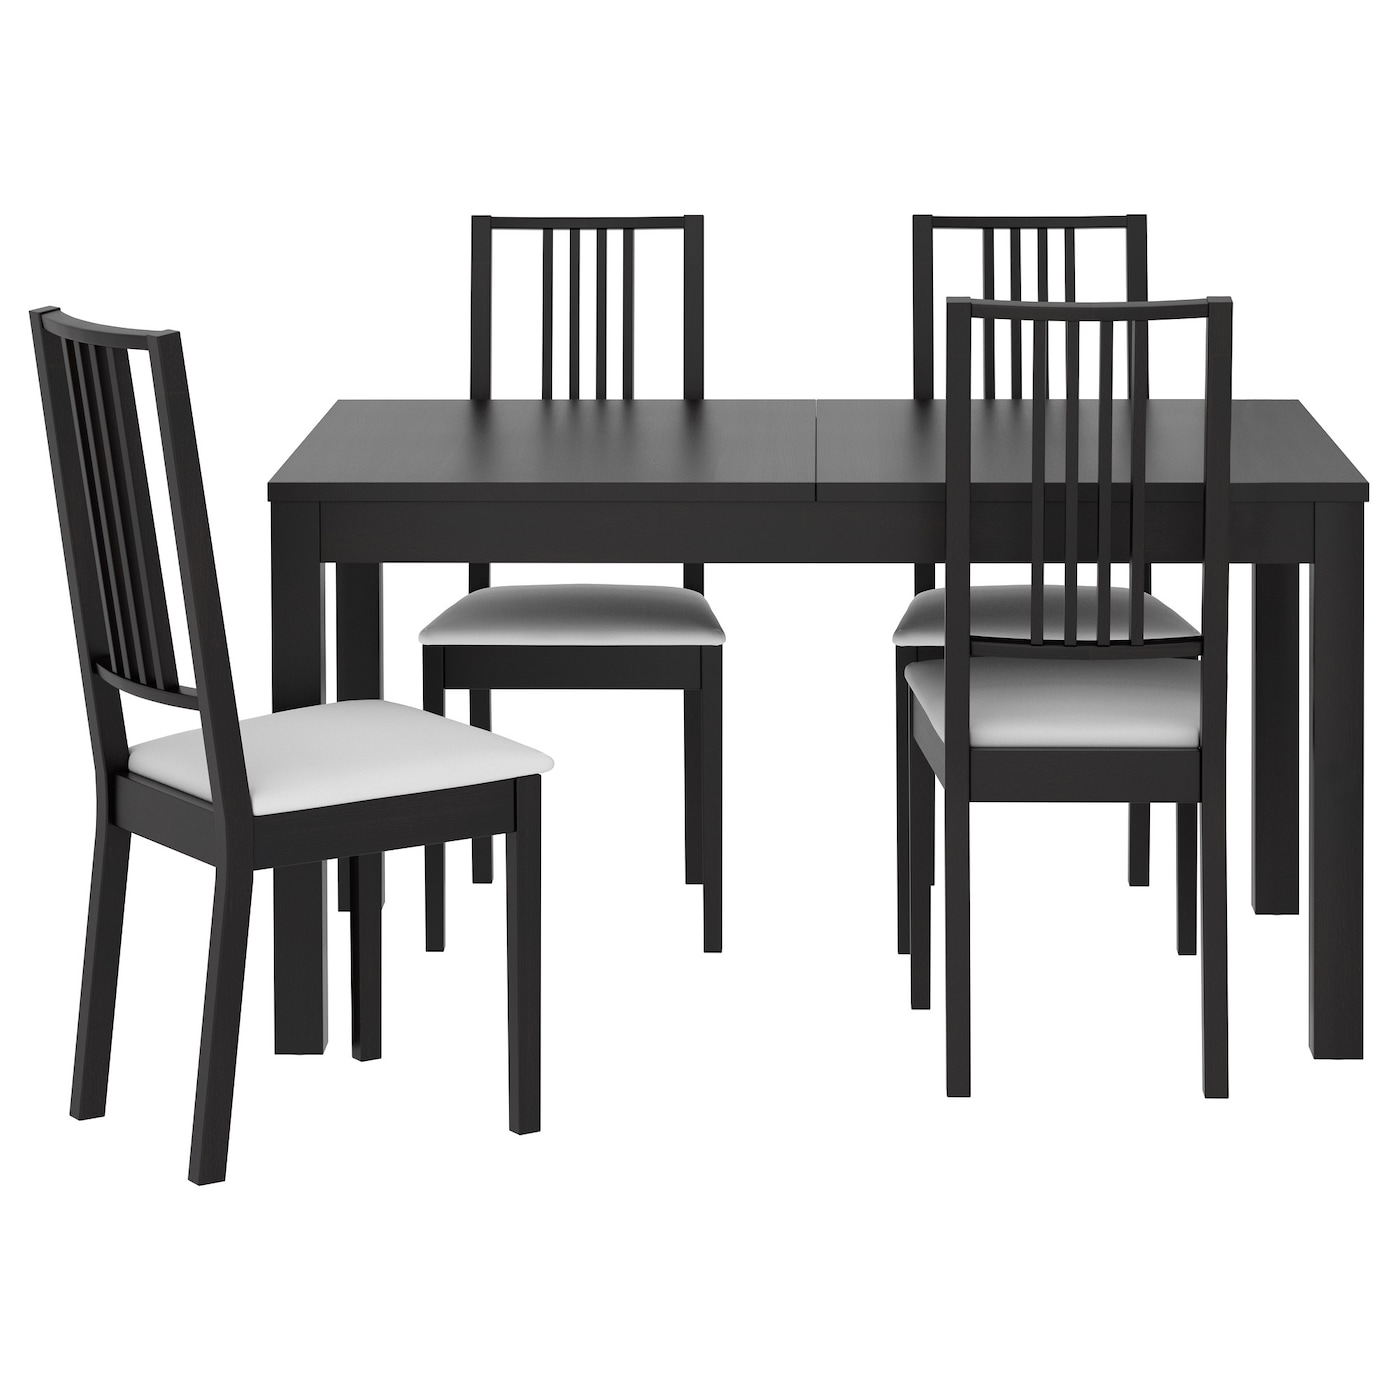 Dining Table And Chairs Black Designs ddnspexcelinfo